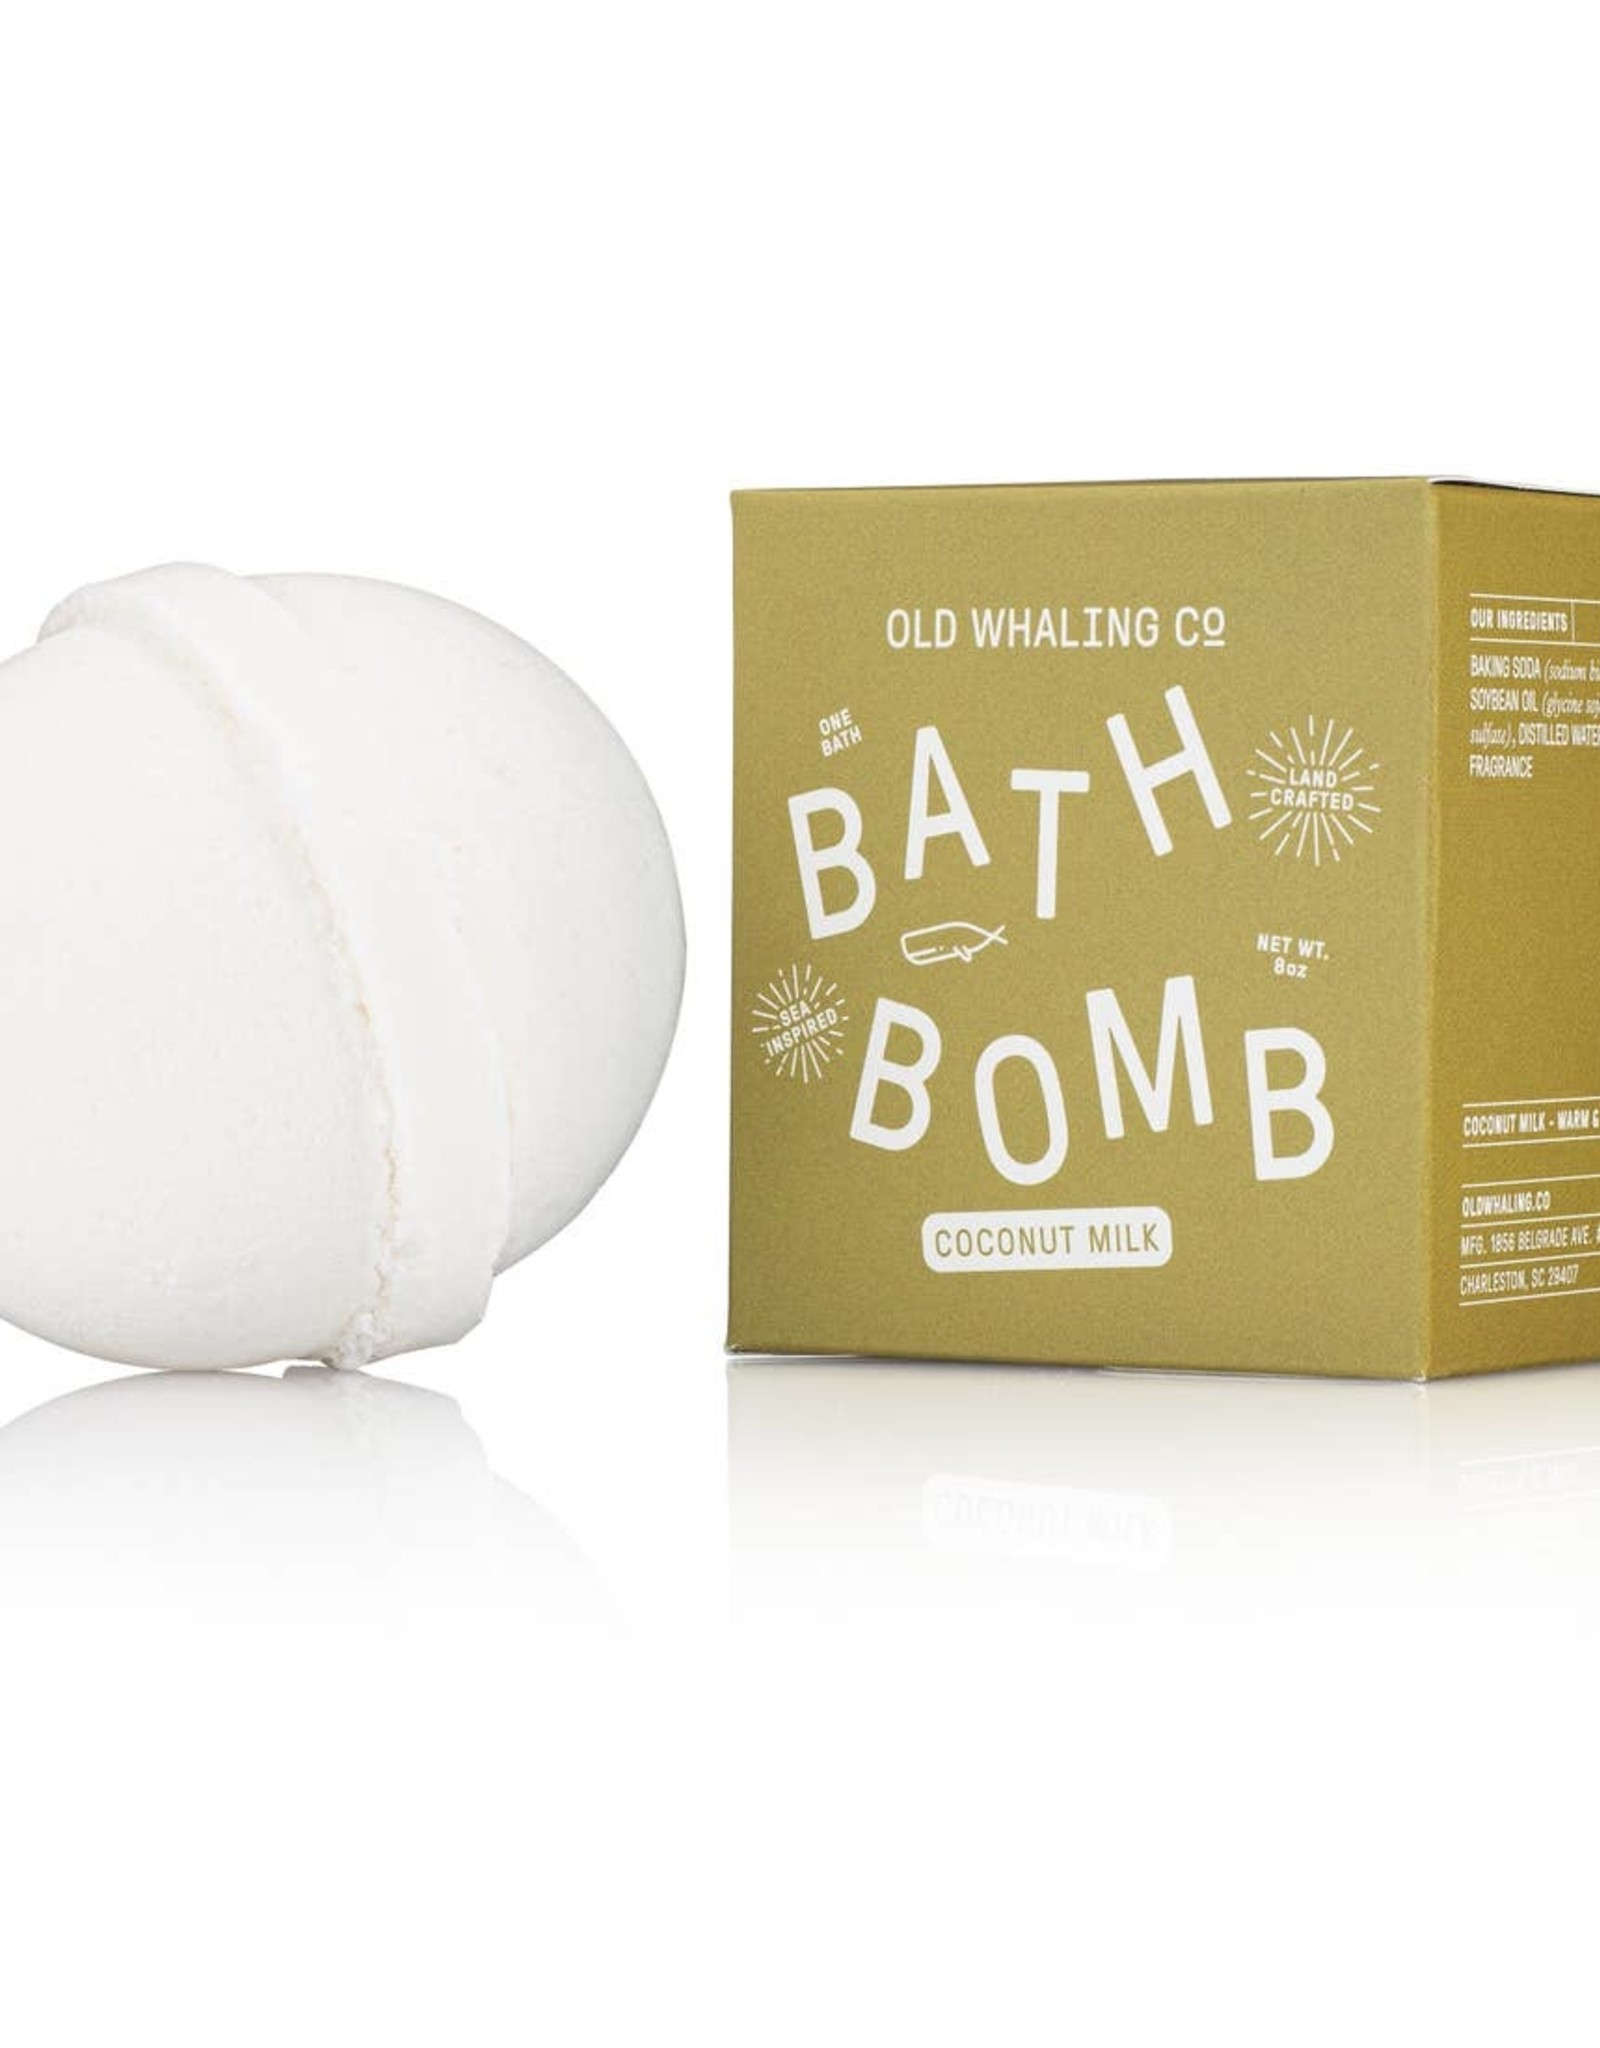 Old Whaling Company Old Whaling Coconut Bath Bomb